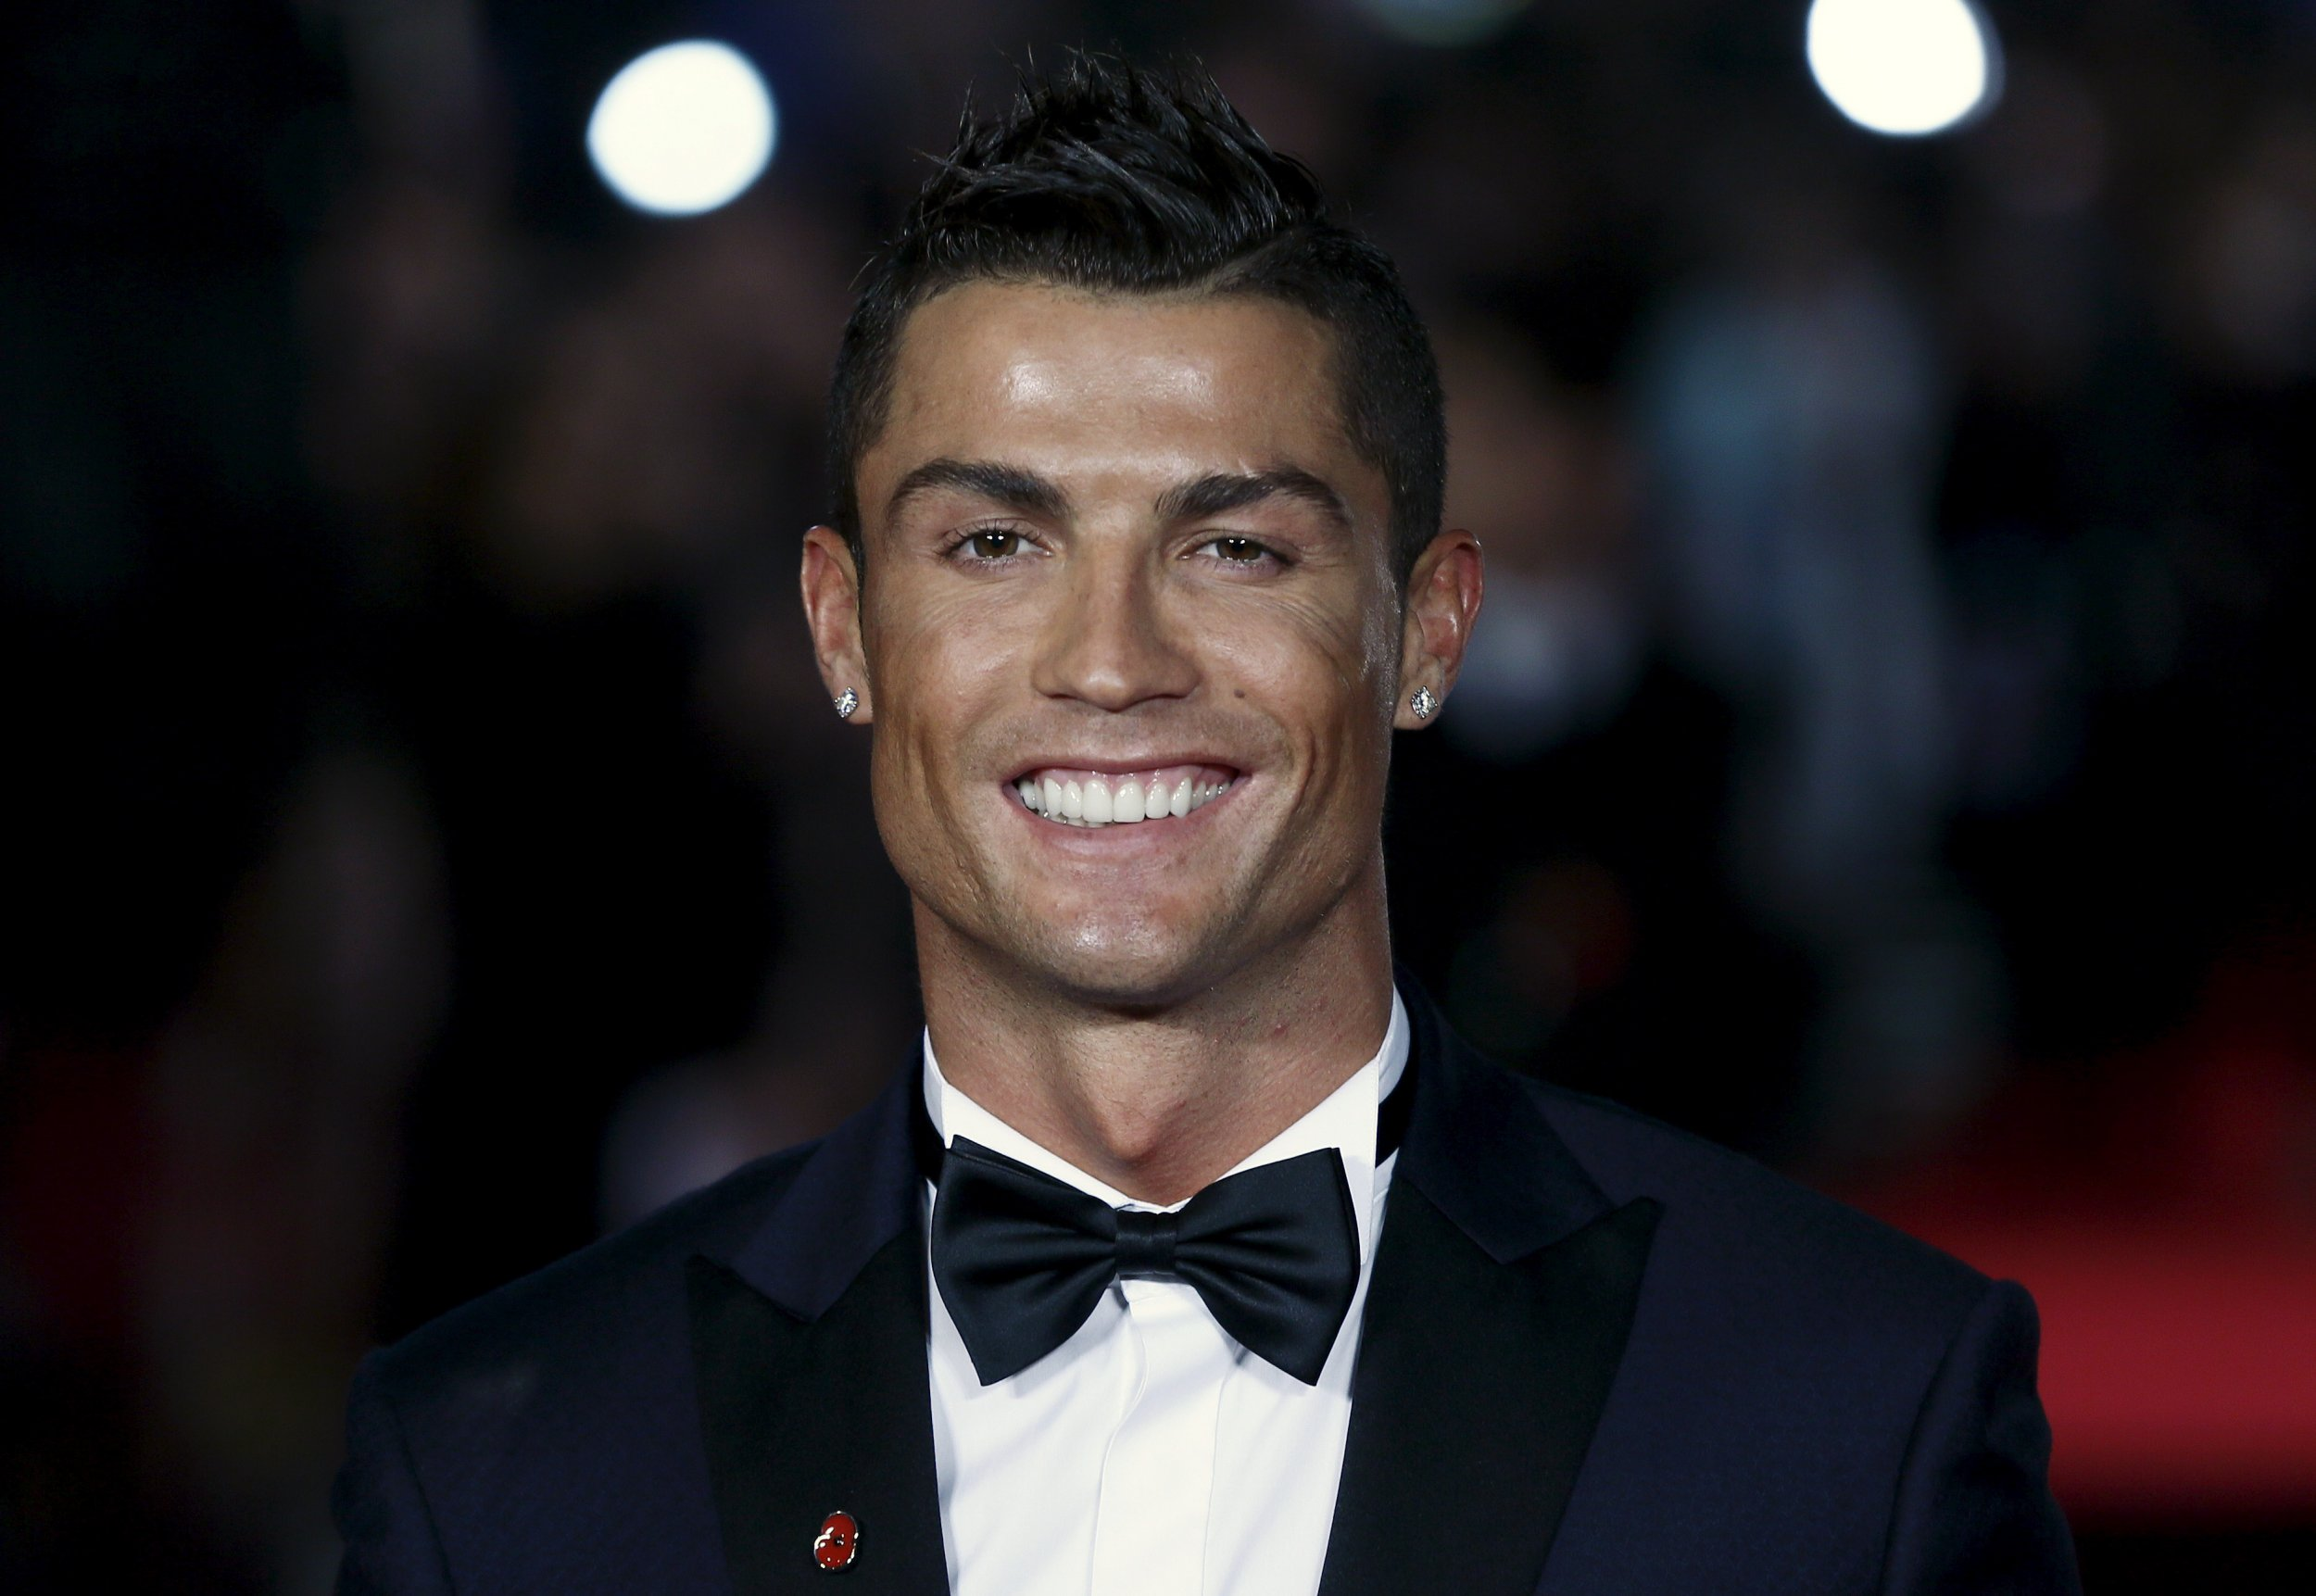 Cristiano Ronaldo Attacked On Social Media For Starring In